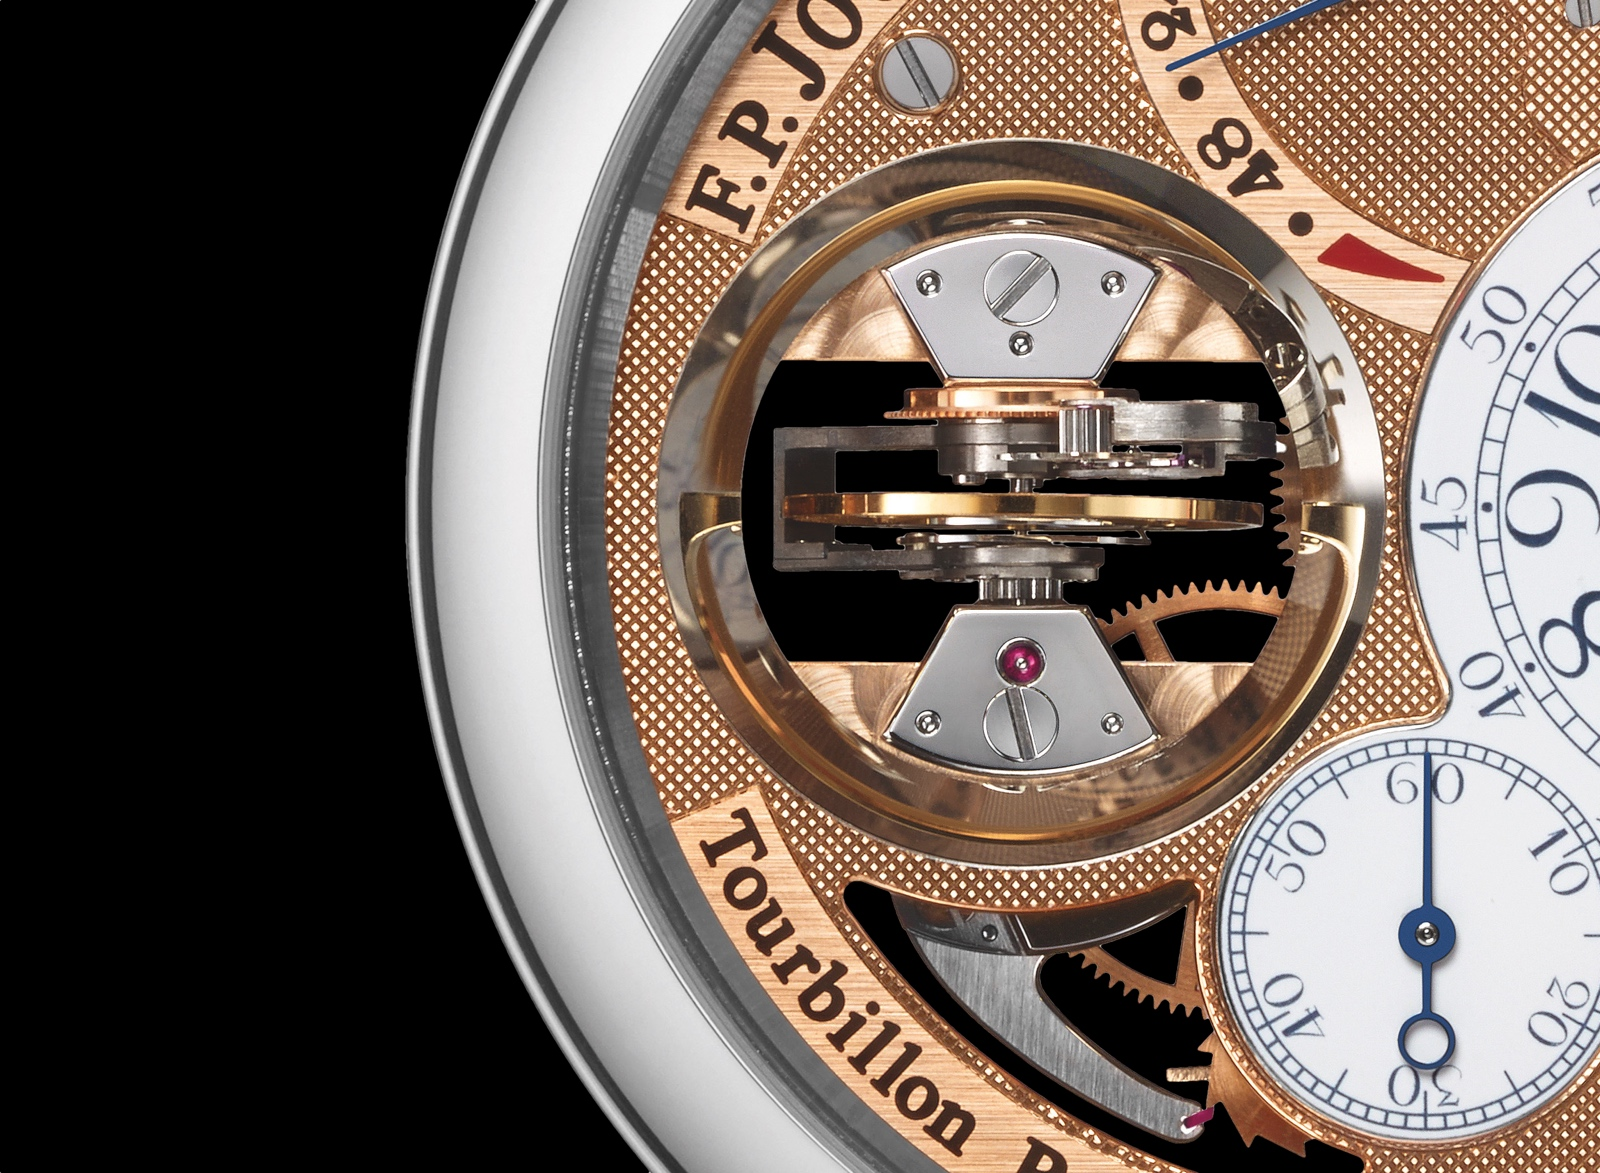 F.P. Journe Tourbillon Souverain Vertical - Tourbillon